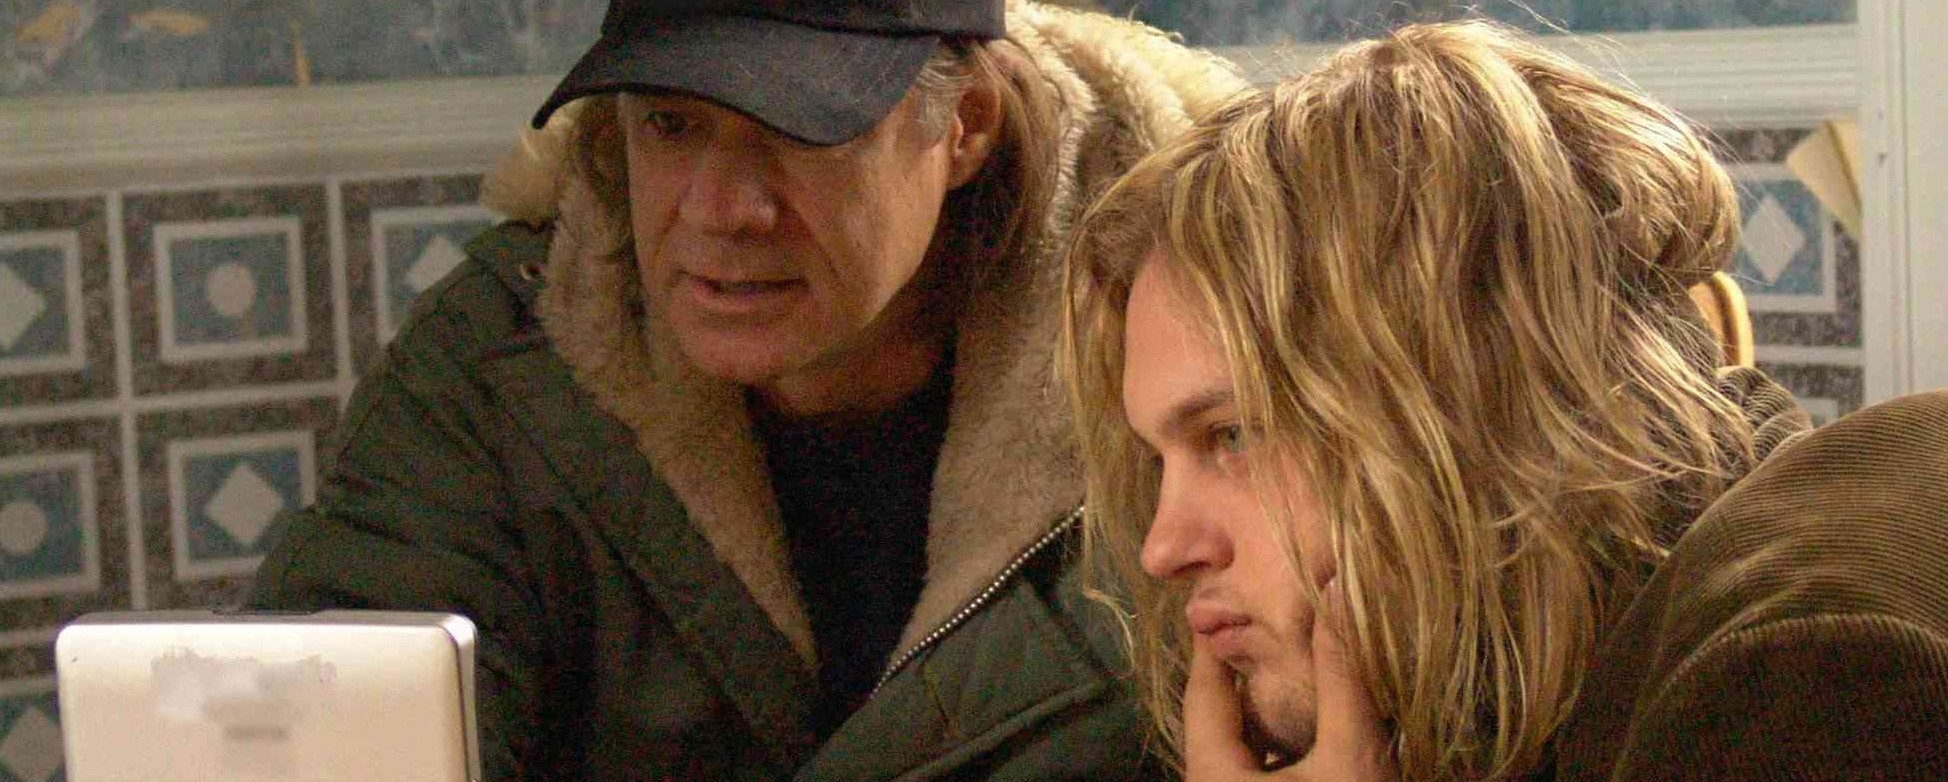 Director Gus Van Sant with actor Michael Pitt on the set of 'Last Days'